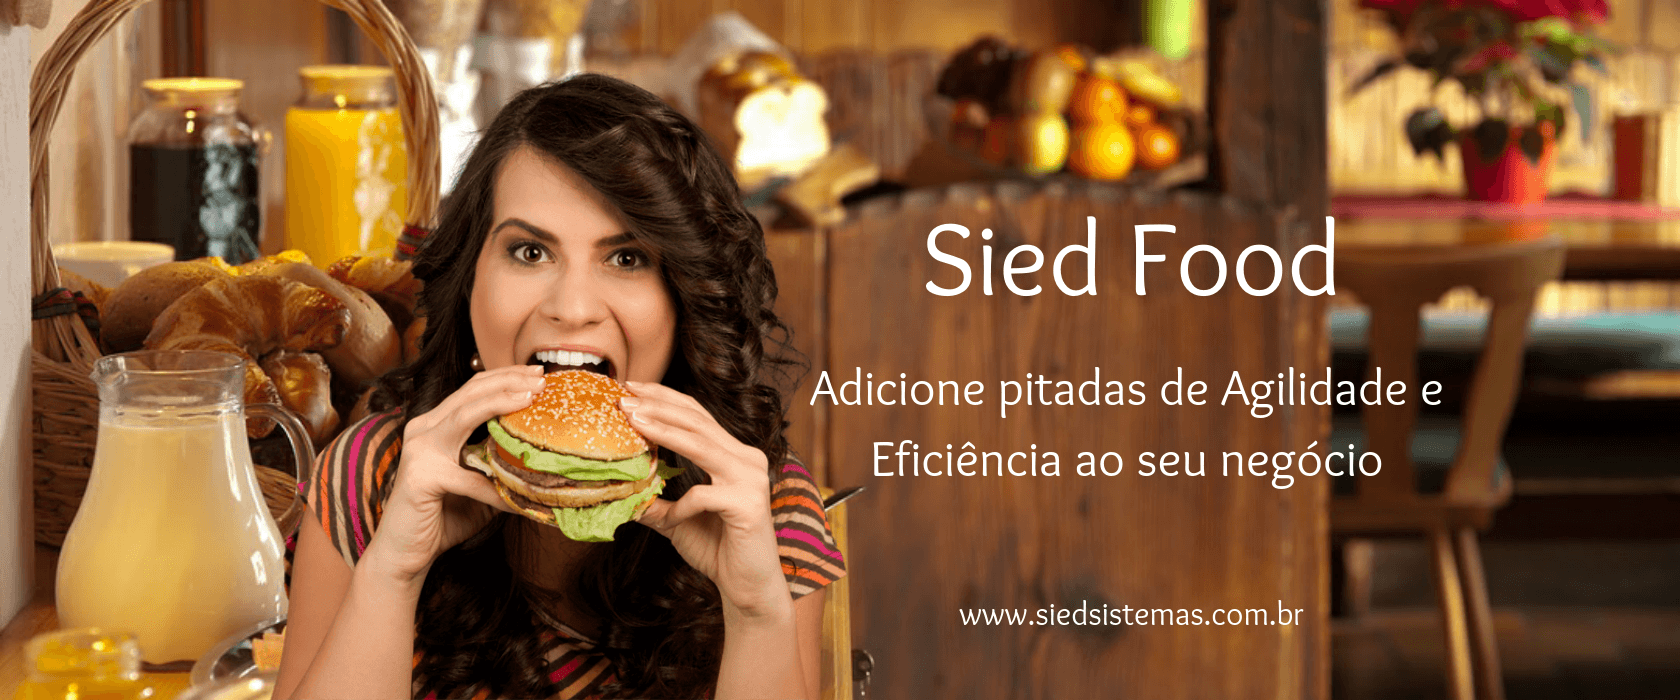 SiedFood